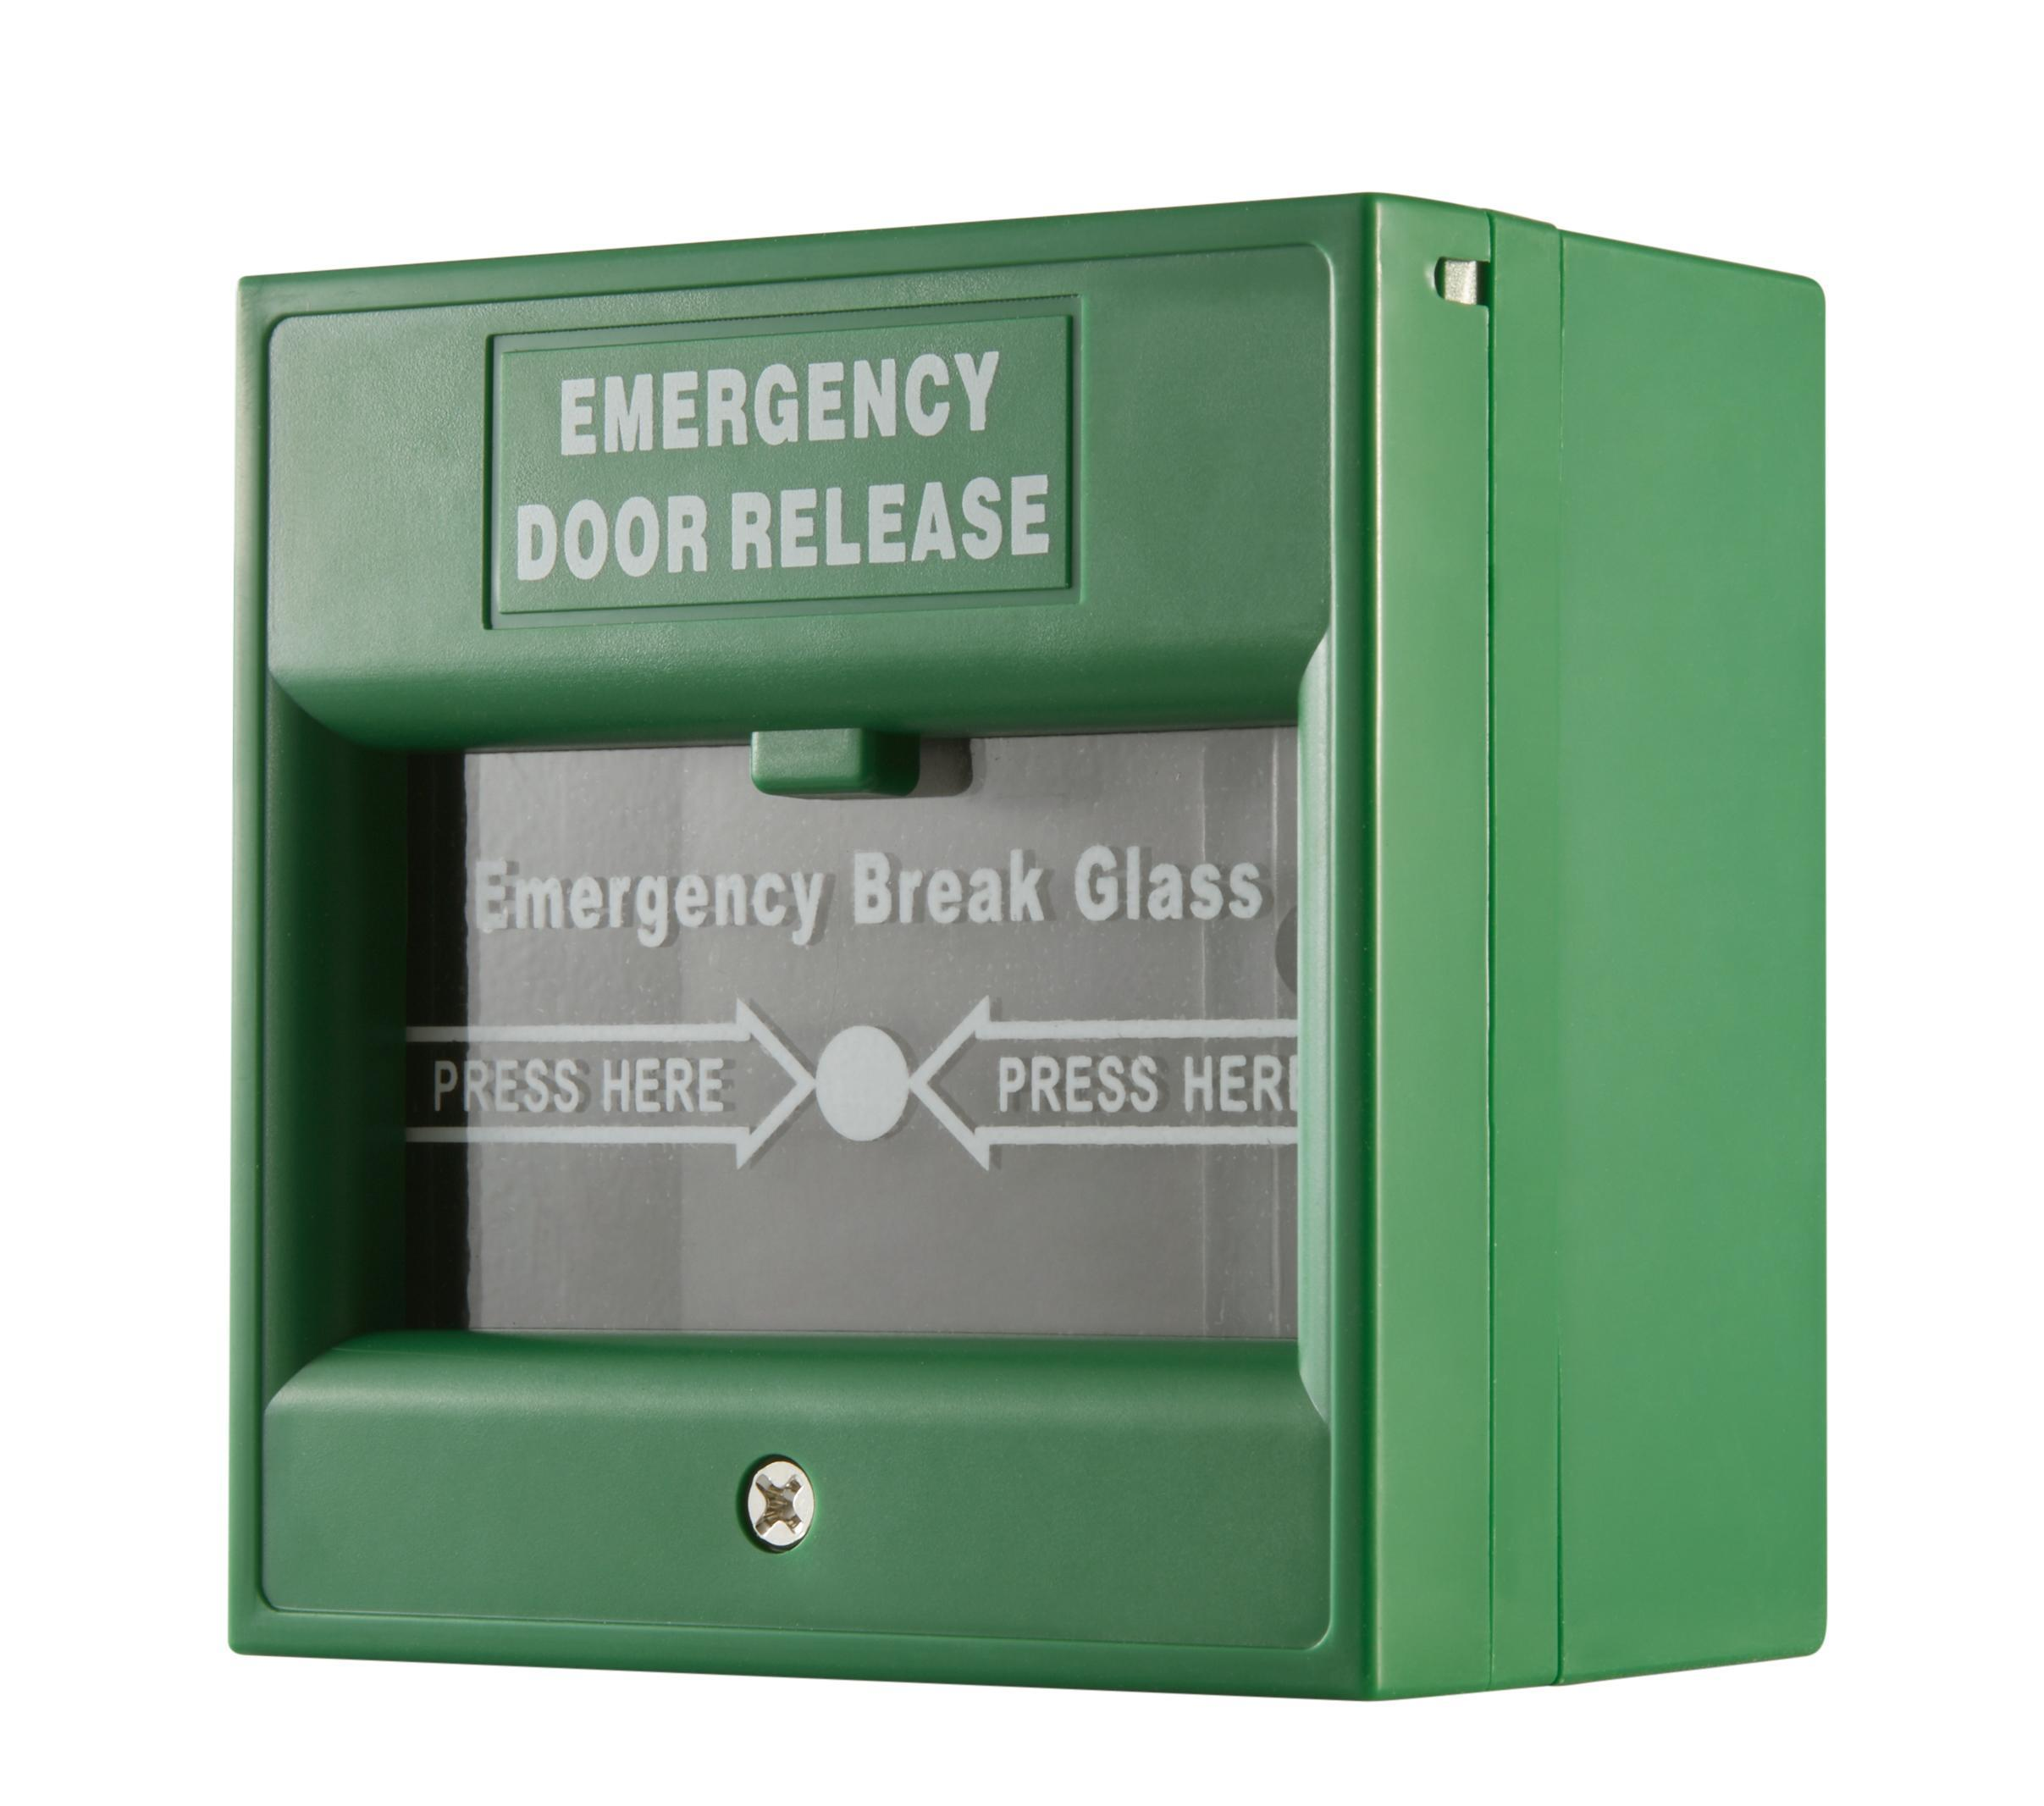 Hikvision DS-K7PEB Emergency Break Glass Grün